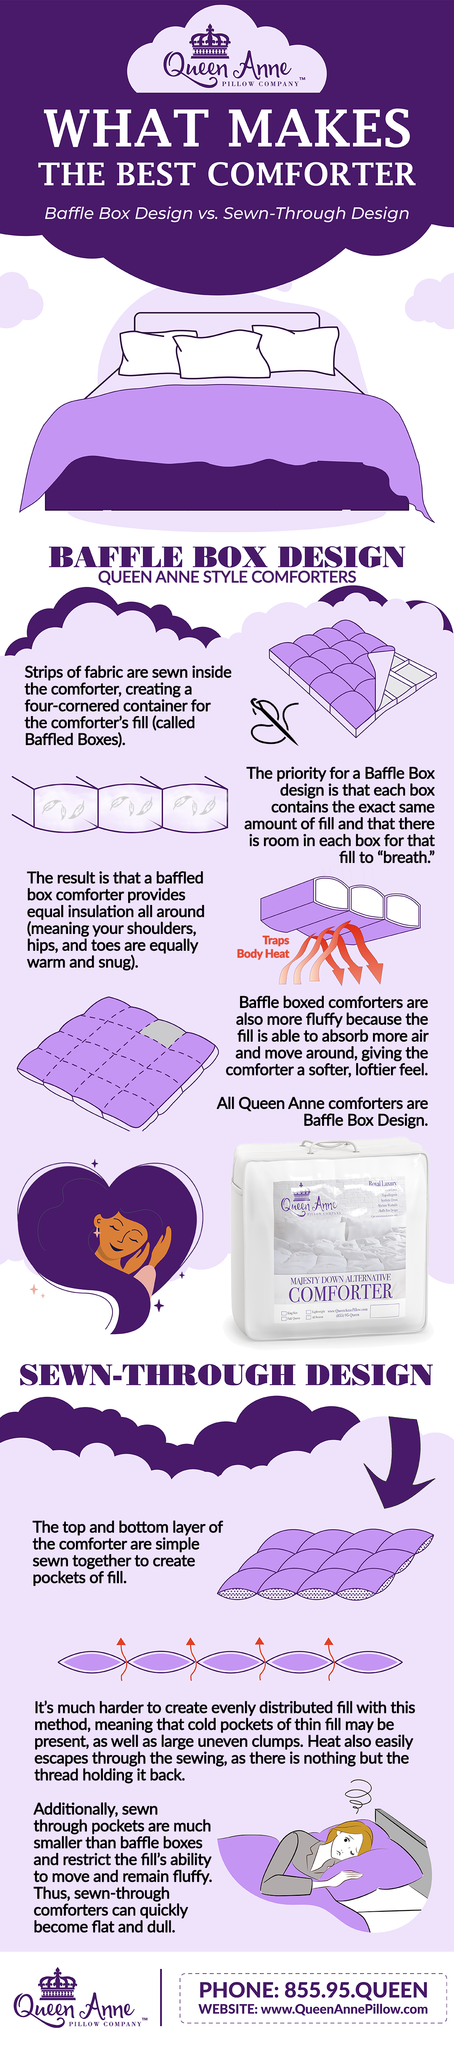 what is the best kind of comforter